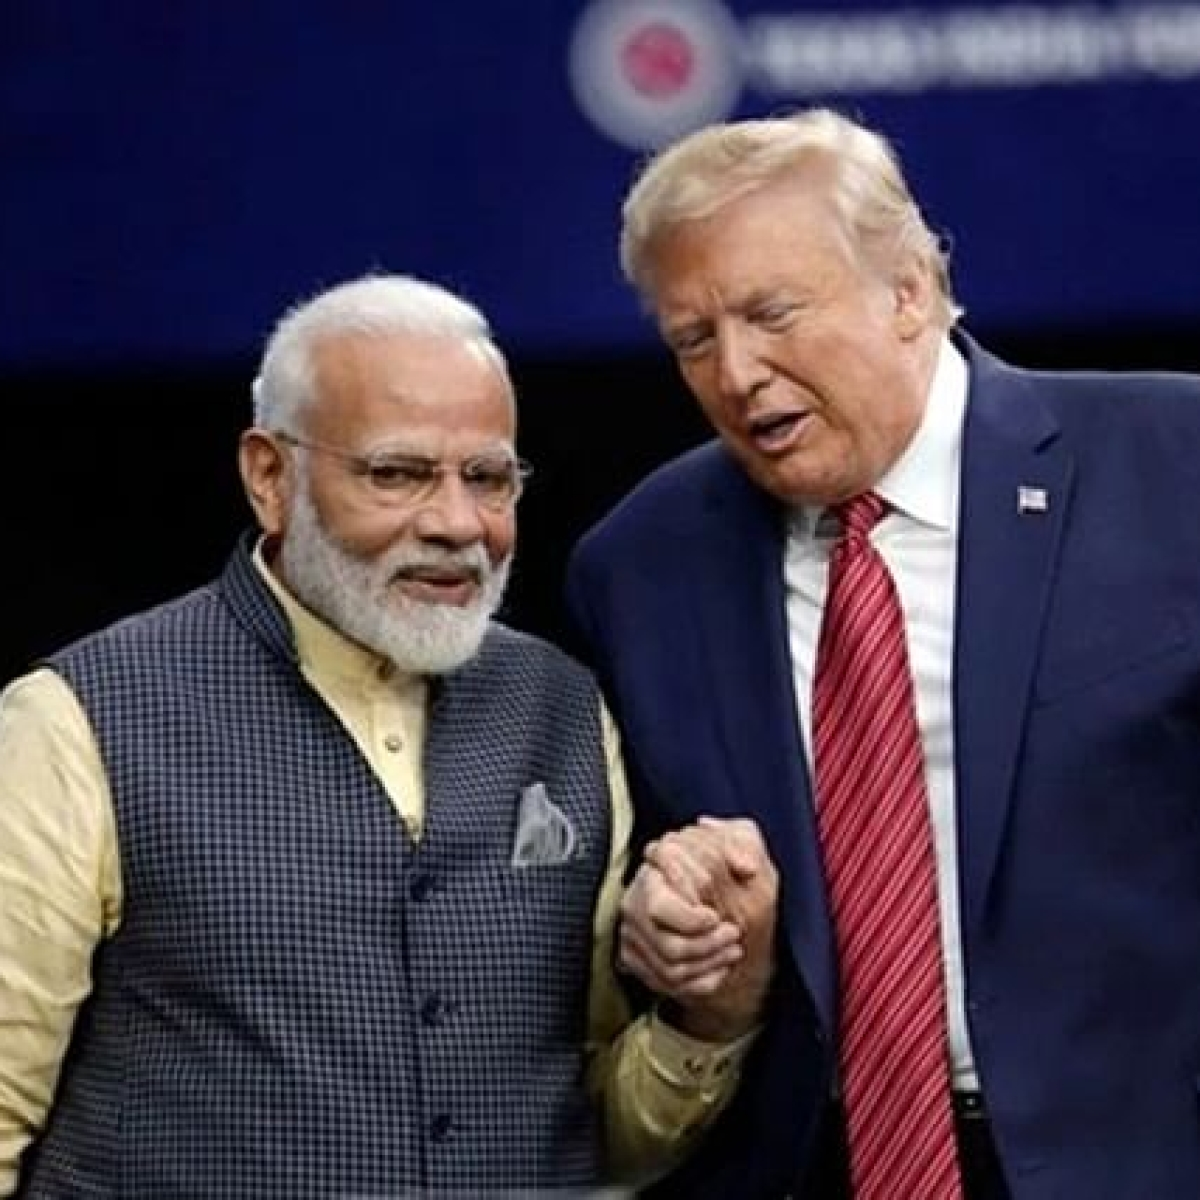 Donald Trump praises, thanks PM Modi, on decision to supply hydroxychloroquine